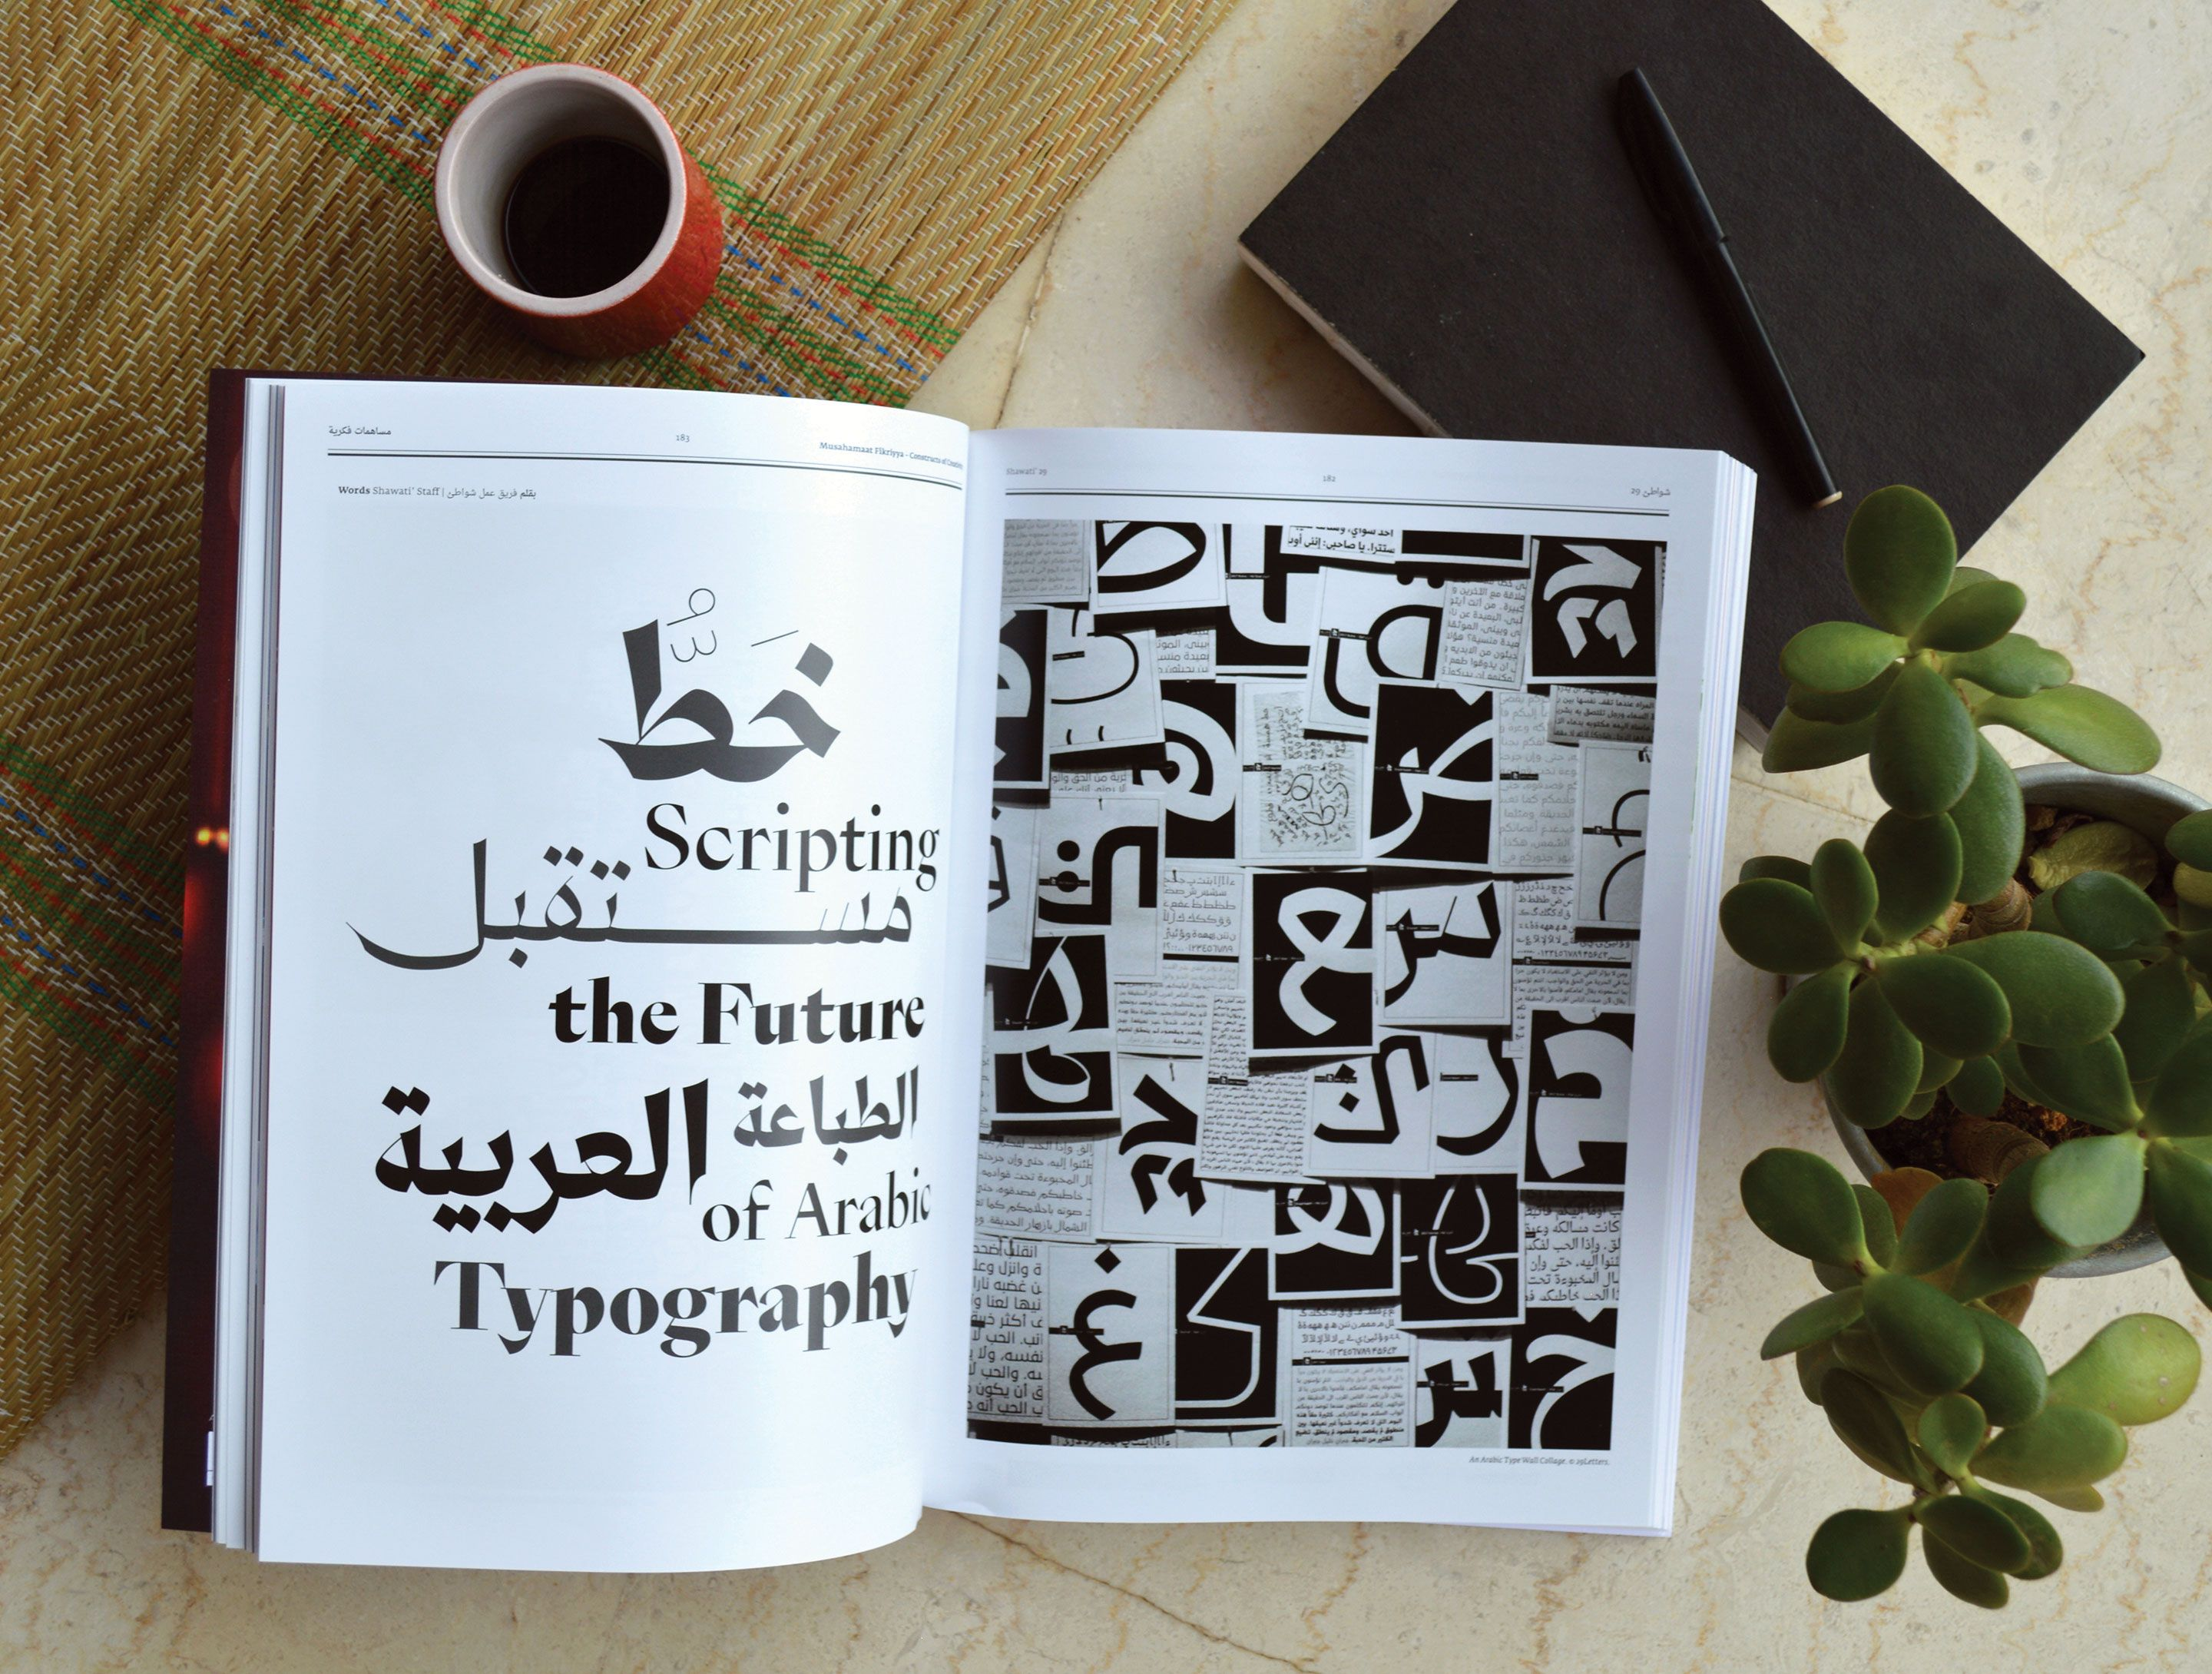 29LT Zeyn Typeface in-use in art & culture magazine  Name Meaning